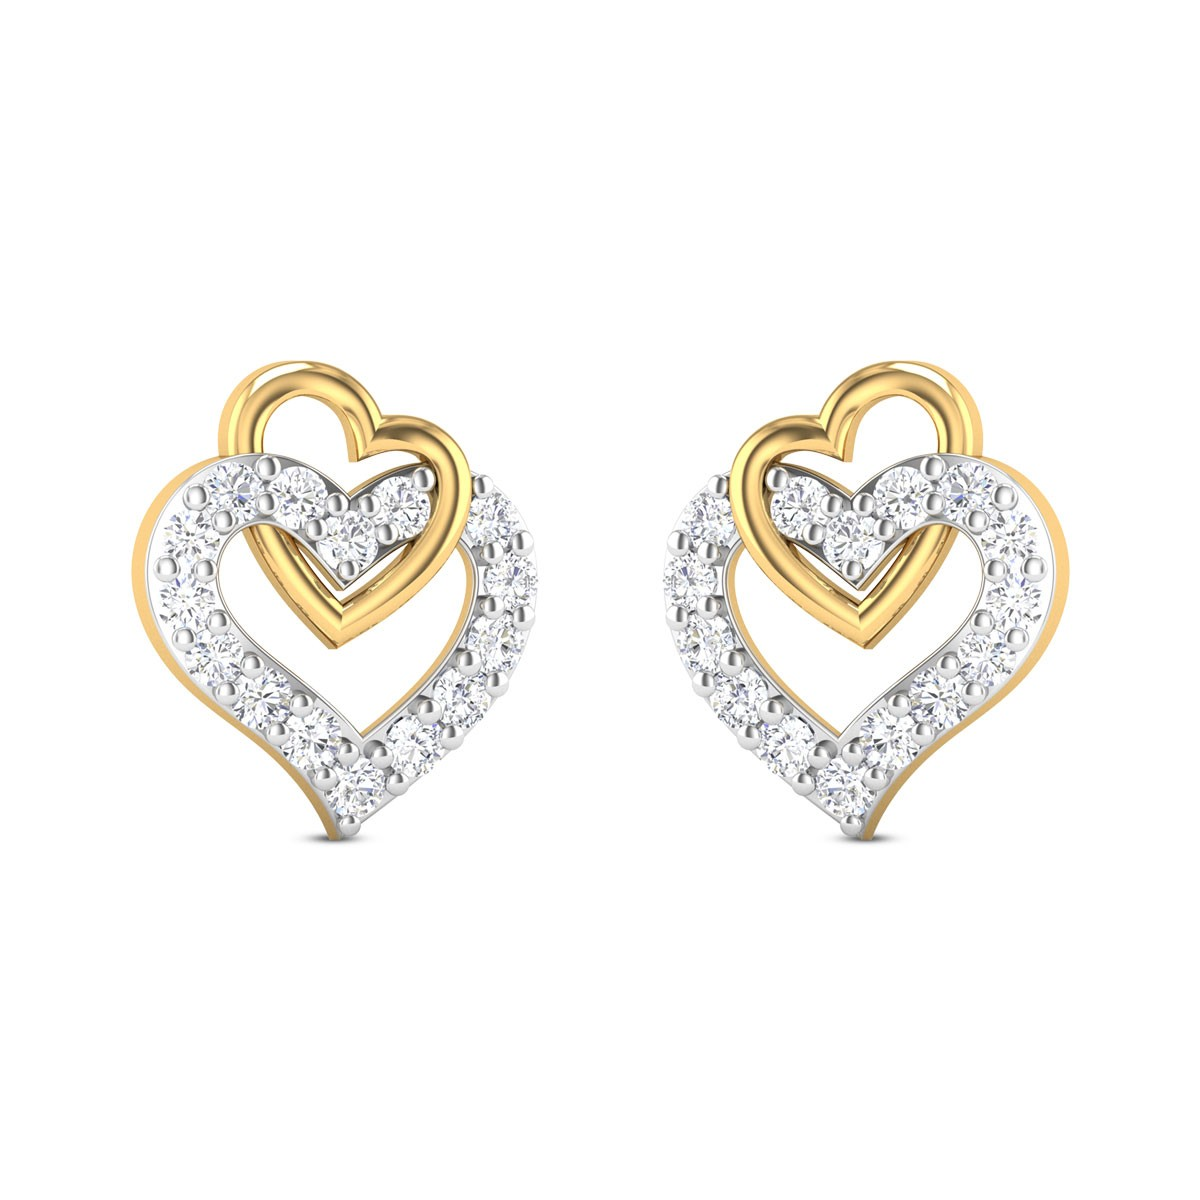 Hermione Diamond Earrings